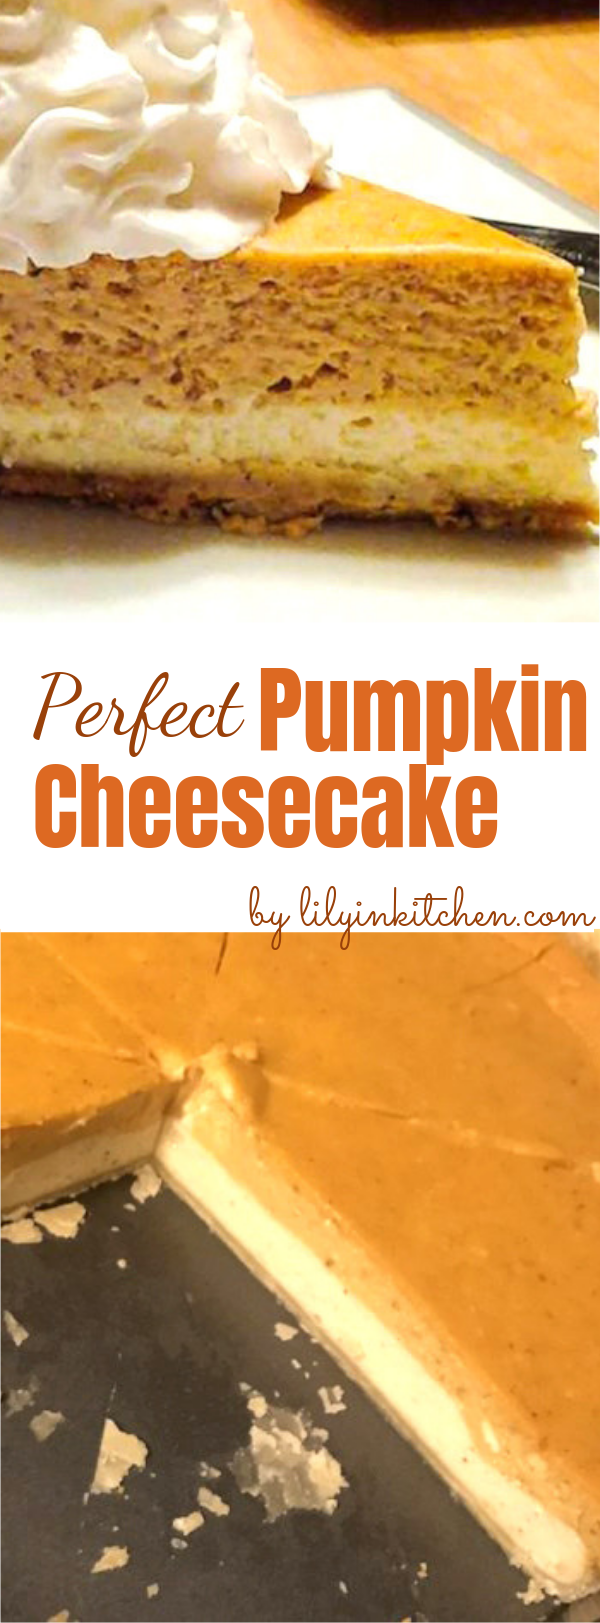 Double Layer Pumpkin Cheesecake This Double Layer Pumpkin Cheesecake is a perfect dessert for holidays. Loaded with spice and pumpkin, and a layer of creamy cheesecake, it's definitely a crowd-pleaser! #pumpkin #thanksgiving #dessert #cheesecake #pumpkincheesecake #pumpkincheesecake